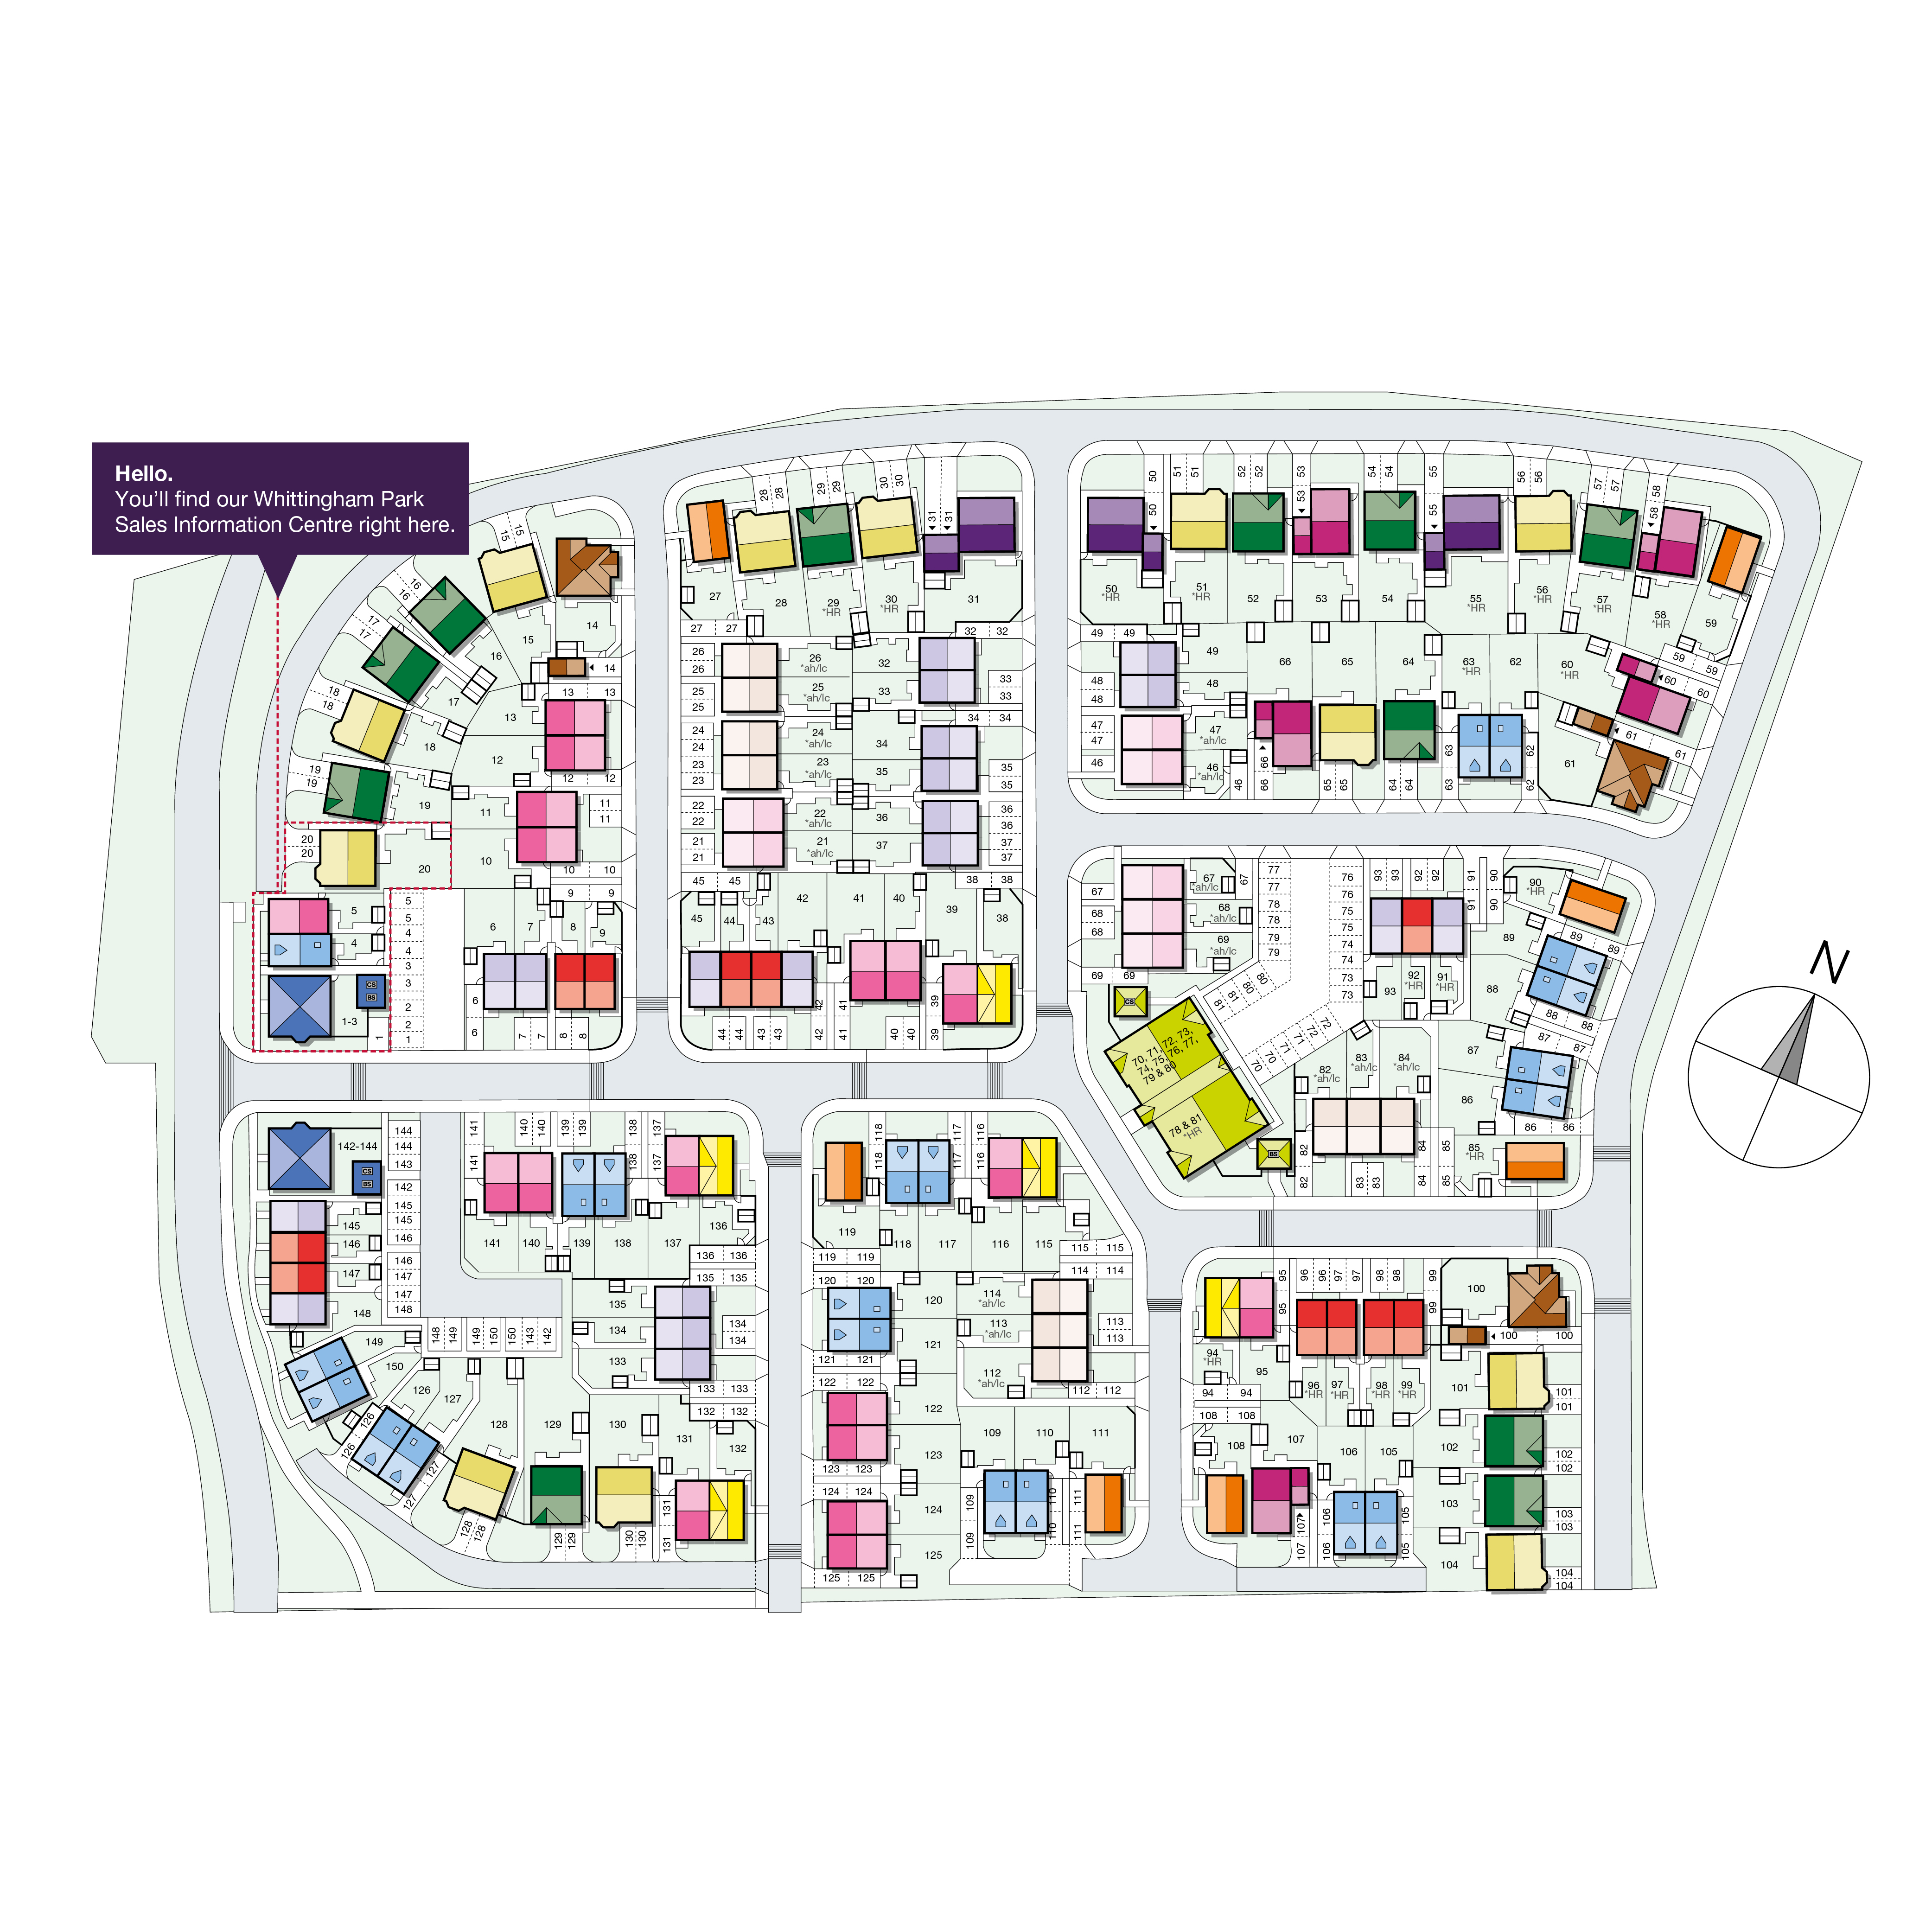 Whittingham_Park_Siteplan